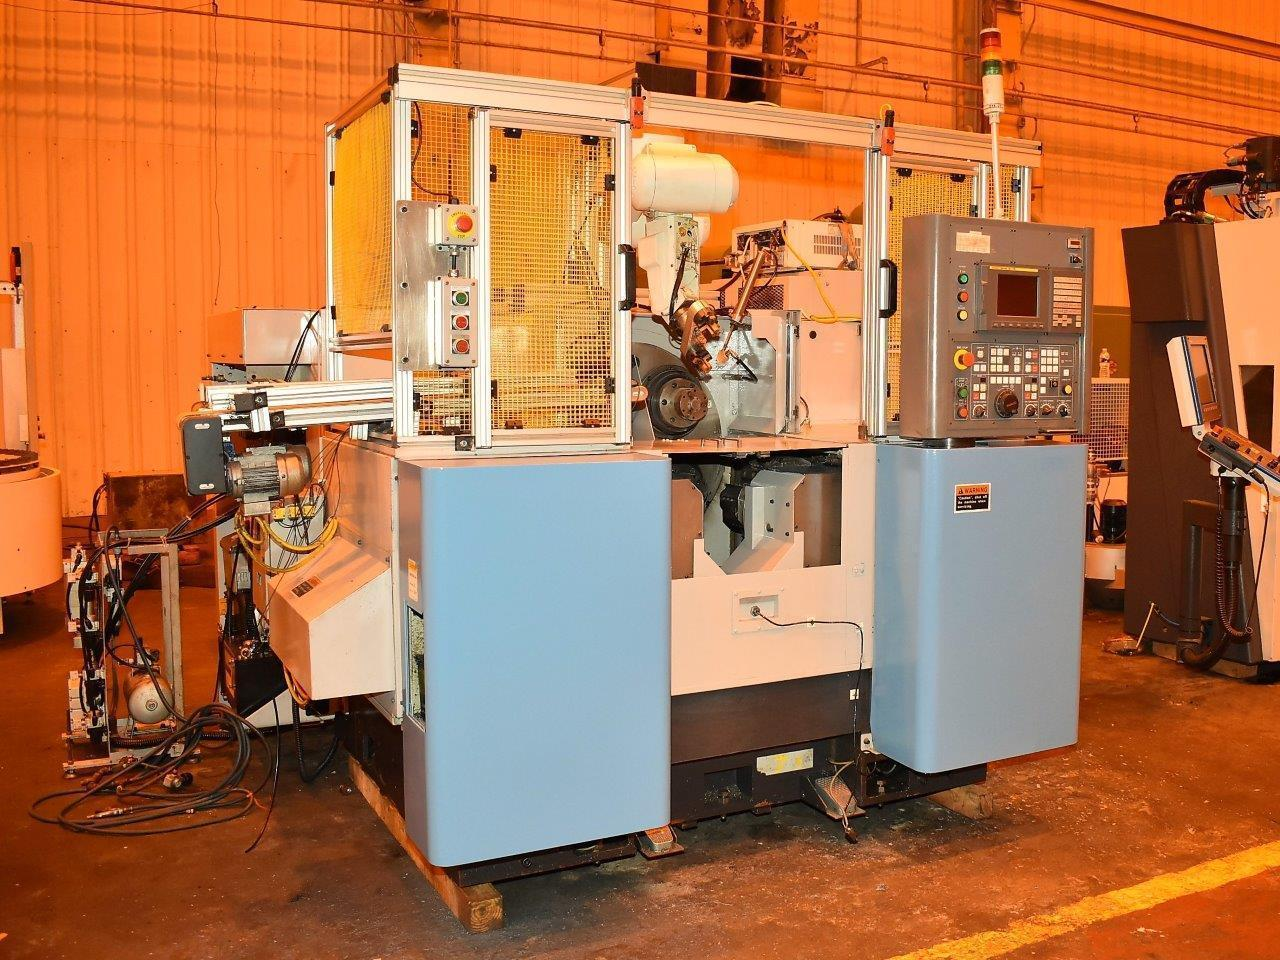 Kitako Model HS4200N CNC Multi Spindle (4) Automatic Lathe, with 4-Spindles (4-Northfield Chucks), Fanuc 18iTB Control, 4-Chucks, Mitsubishi Robotic Loader, New 2009